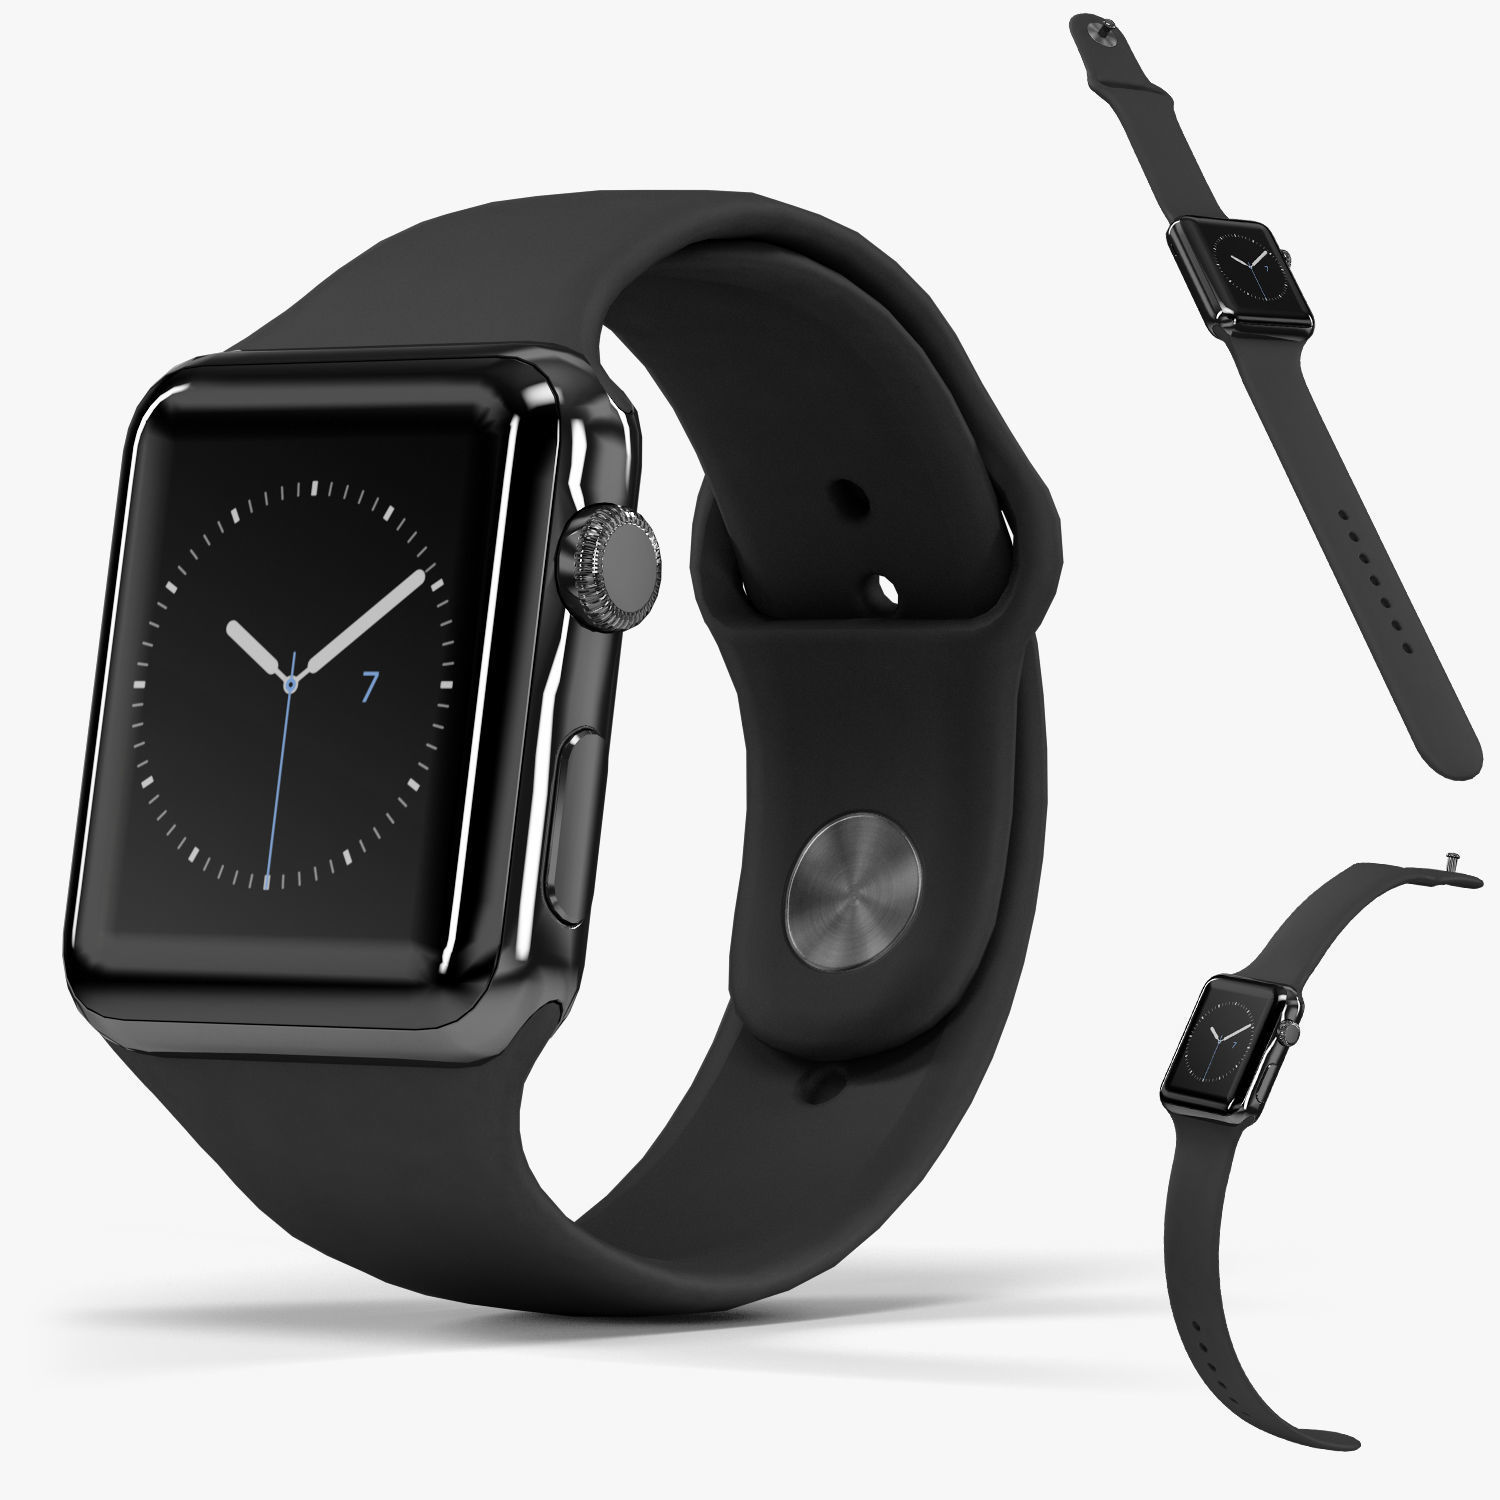 Apple Watch Space Black Stainless Steell Case Black Sport Band